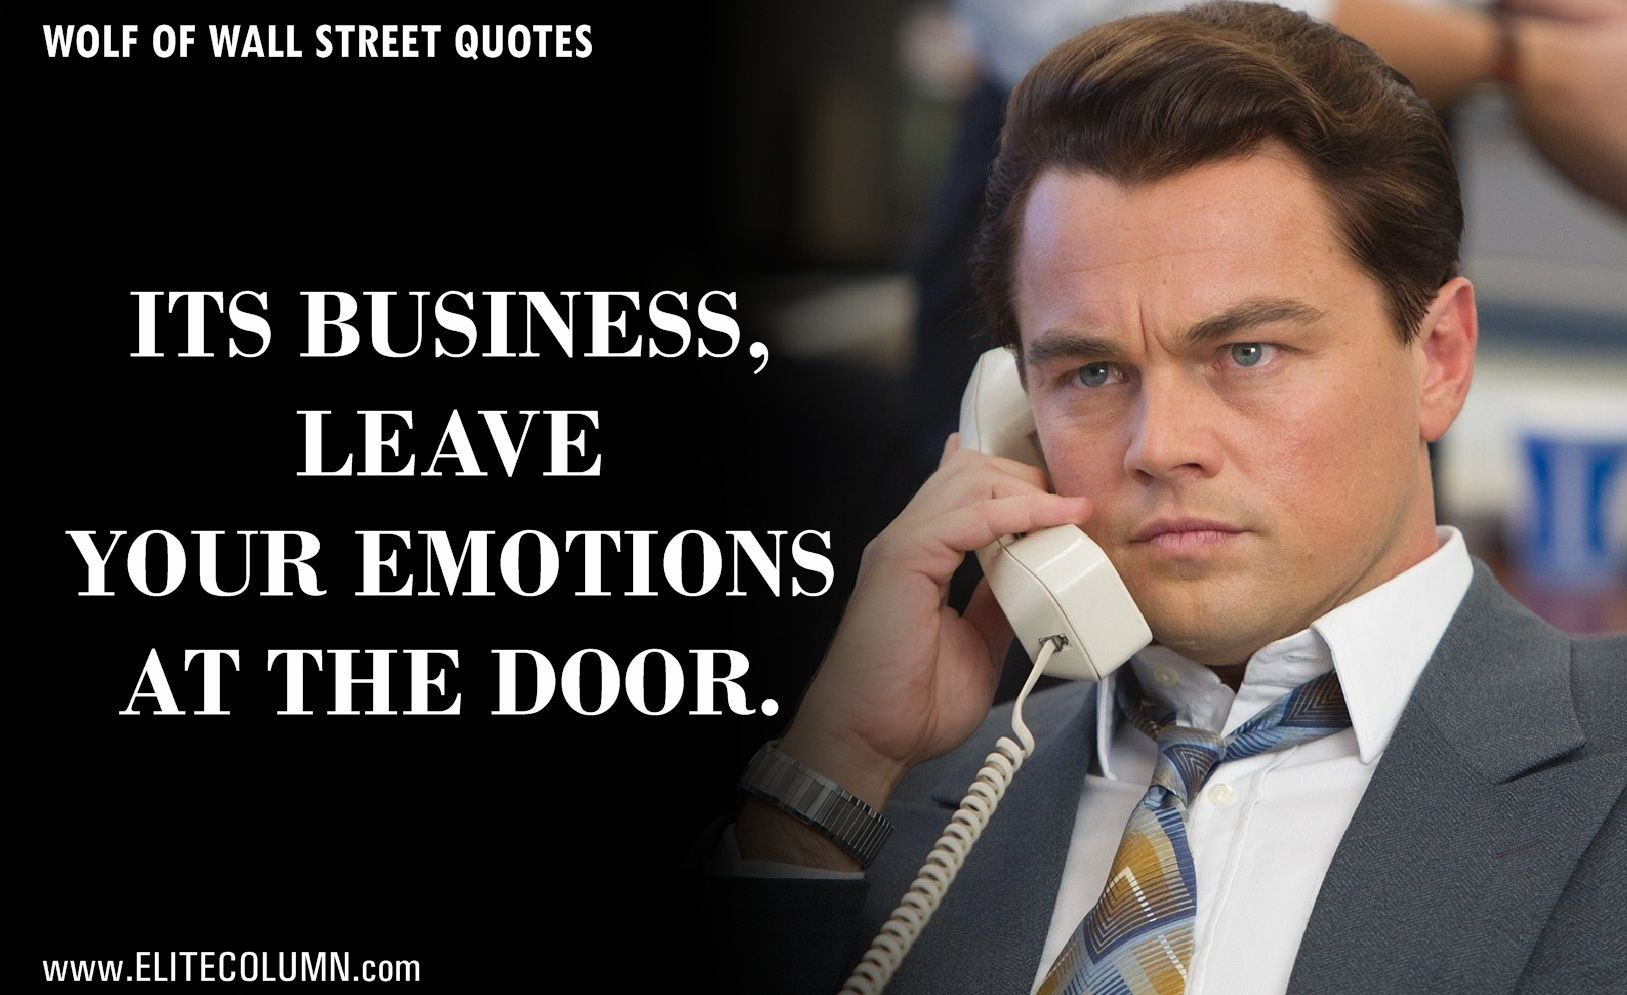 61 The Wolf Of Wall Street Quotes That Will Make You Rich Elitecolumn Street Quotes Leonardo Dicaprio Quotes Wolf Of Wall Street